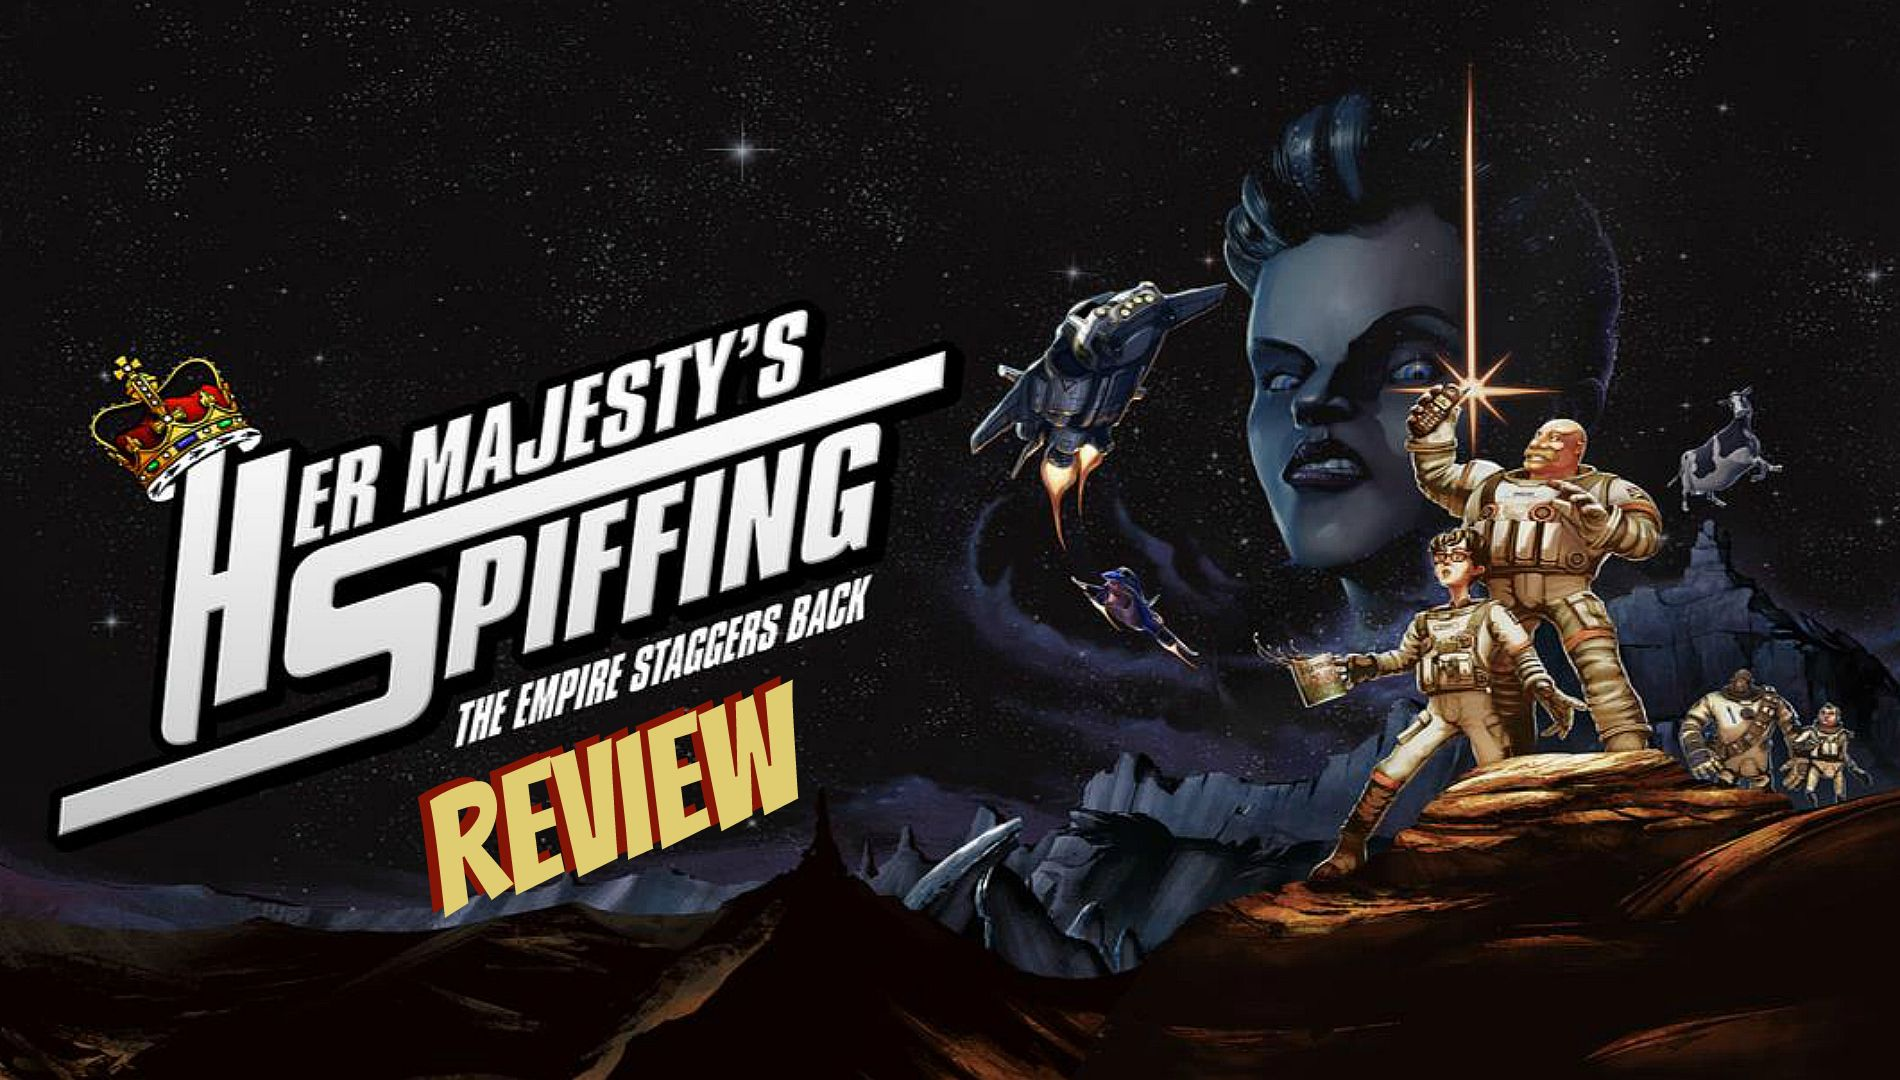 Her Majesty's SPIFFING Review (PS4